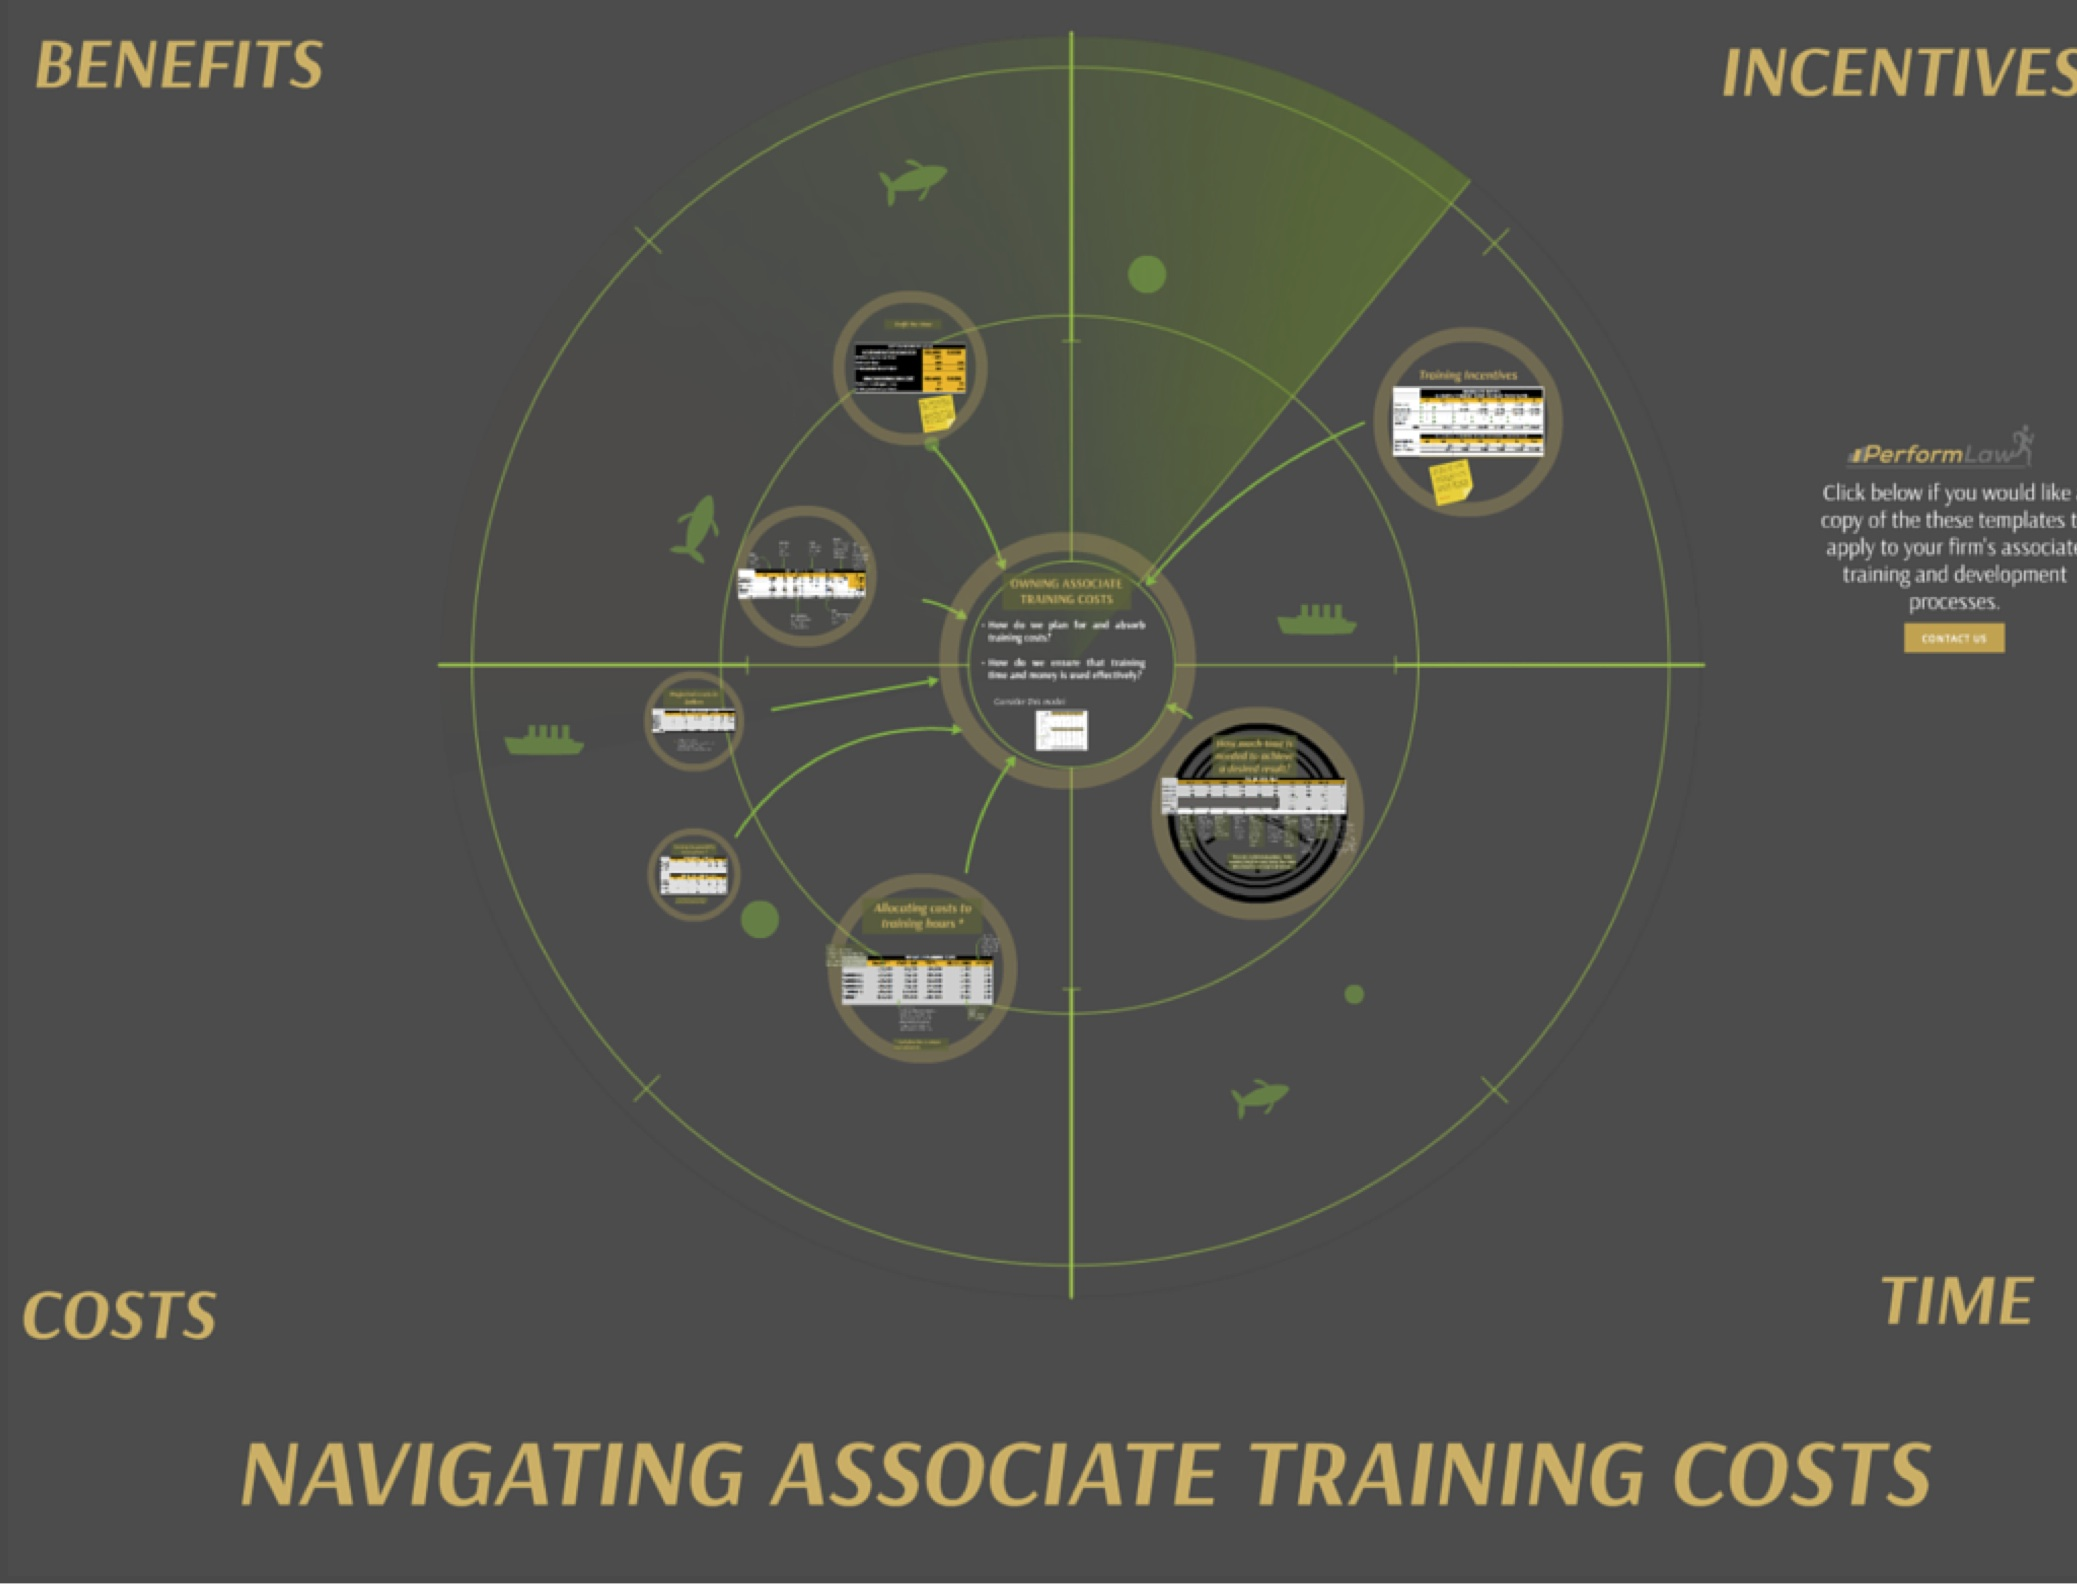 Navigating-Associate-Training-Presentation-Image.jpg